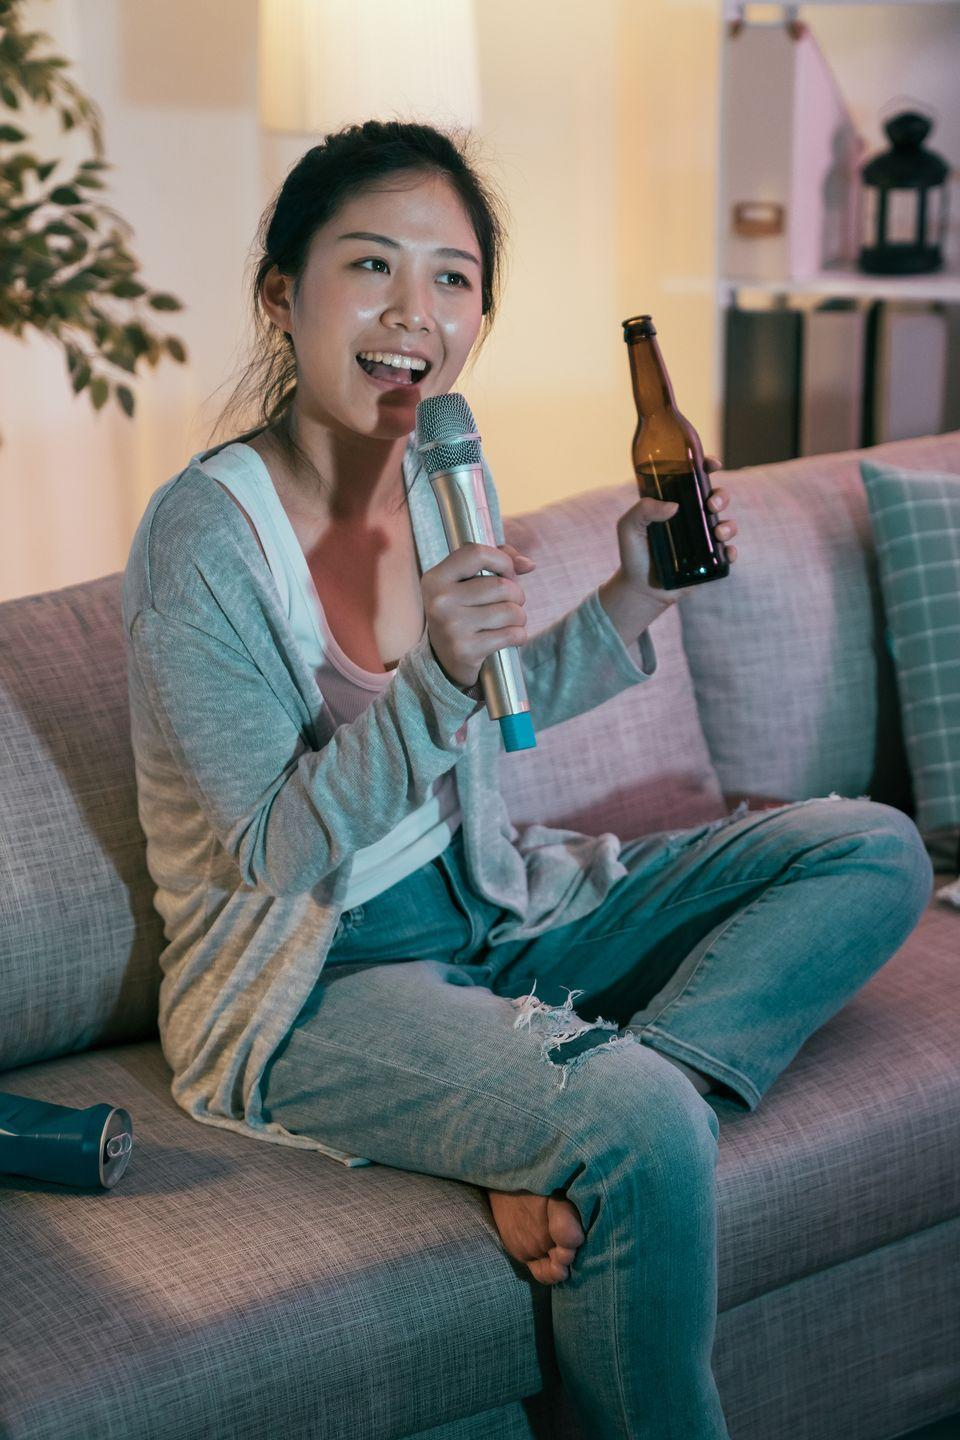 """<p>Since you won't be visiting any karaoke bars for the foreseeable future, download Smule instead. This interactive app lets you sing live karaoke with friends around the world, complete with audio effects and visual features. </p><p><a class=""""link rapid-noclick-resp"""" href=""""https://apps.apple.com/us/app/smule-the-social-singing-app/id509993510"""" rel=""""nofollow noopener"""" target=""""_blank"""" data-ylk=""""slk:GET THE APP"""">GET THE APP</a></p>"""